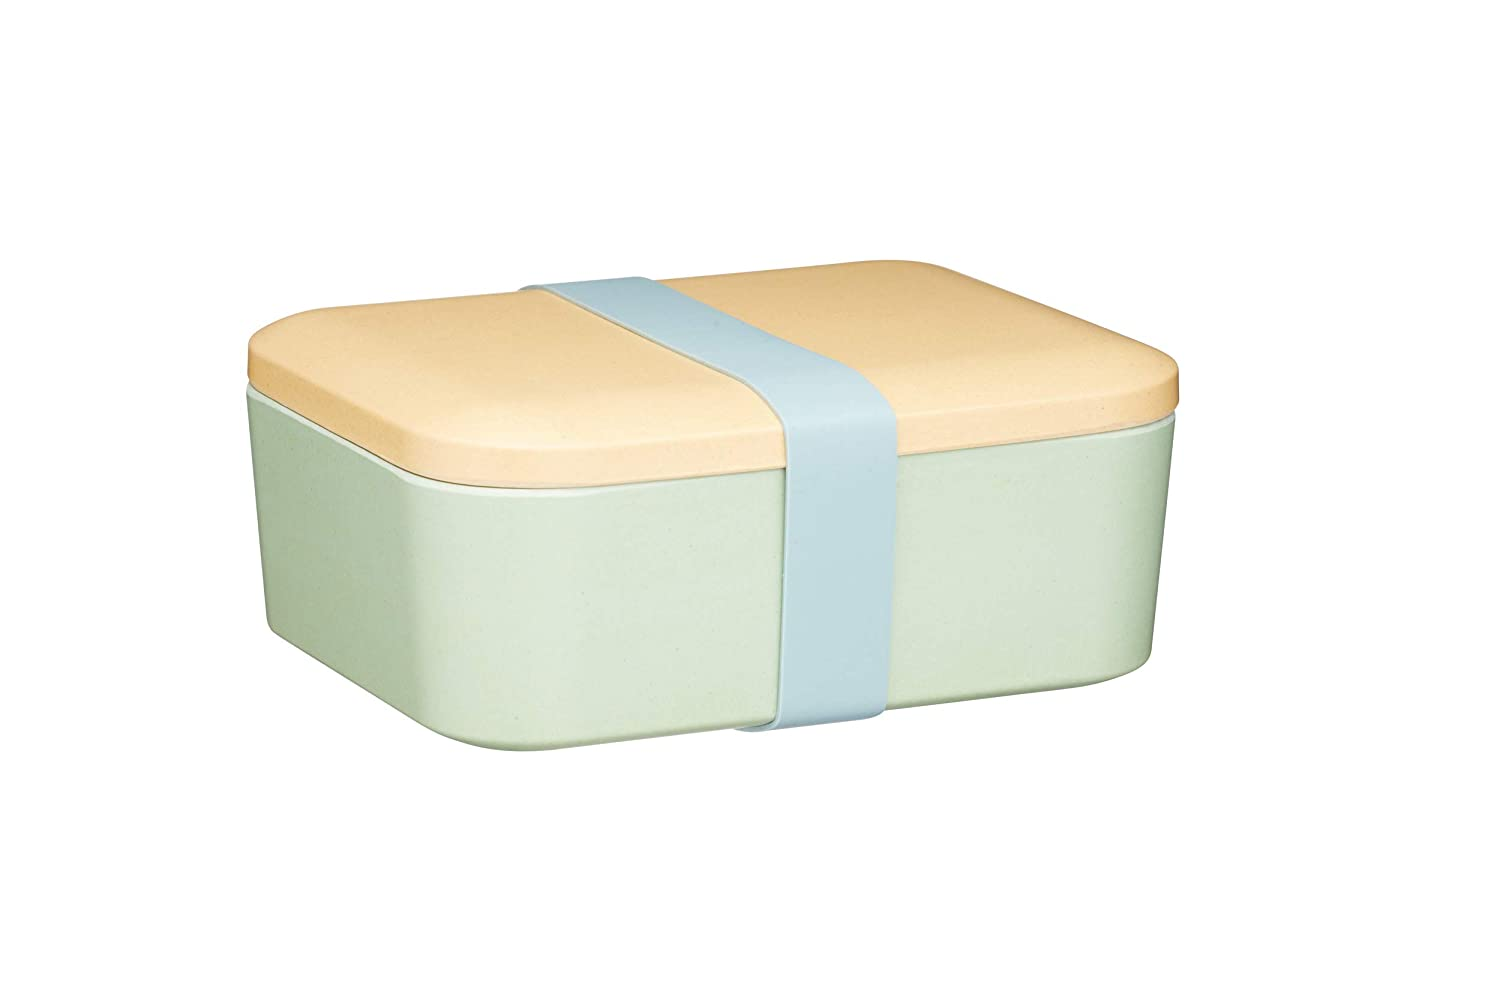 18 x 14.5 x 7.5 cm Sandwich Box with Lid Green KitchenCraft Natural Elements Bamboo Lunch Box